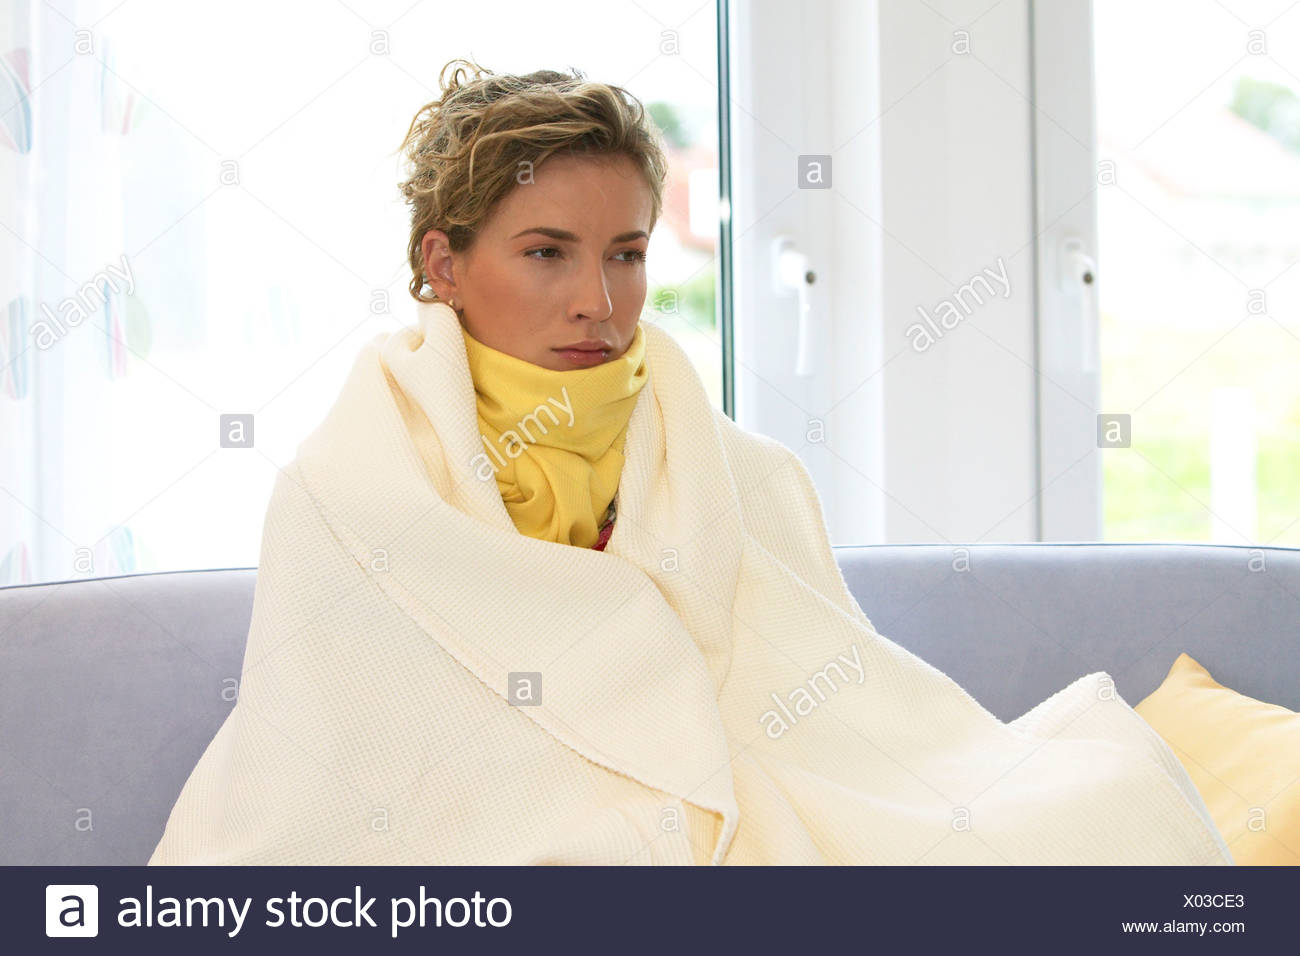 woman having a cold - Stock Image